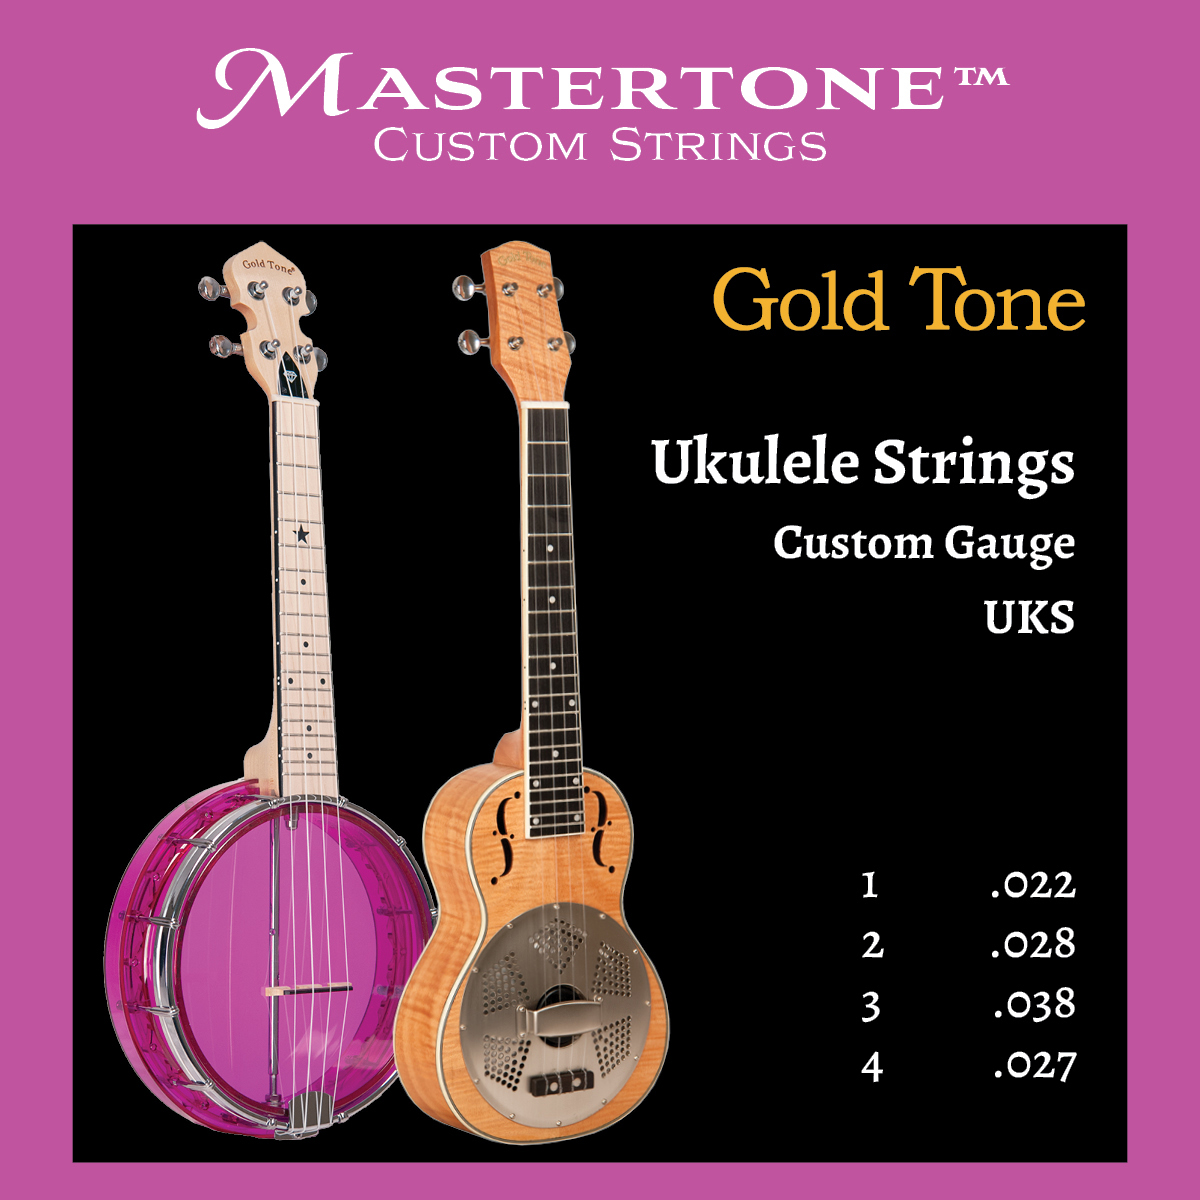 Ukulele Strings (Pack of 3)